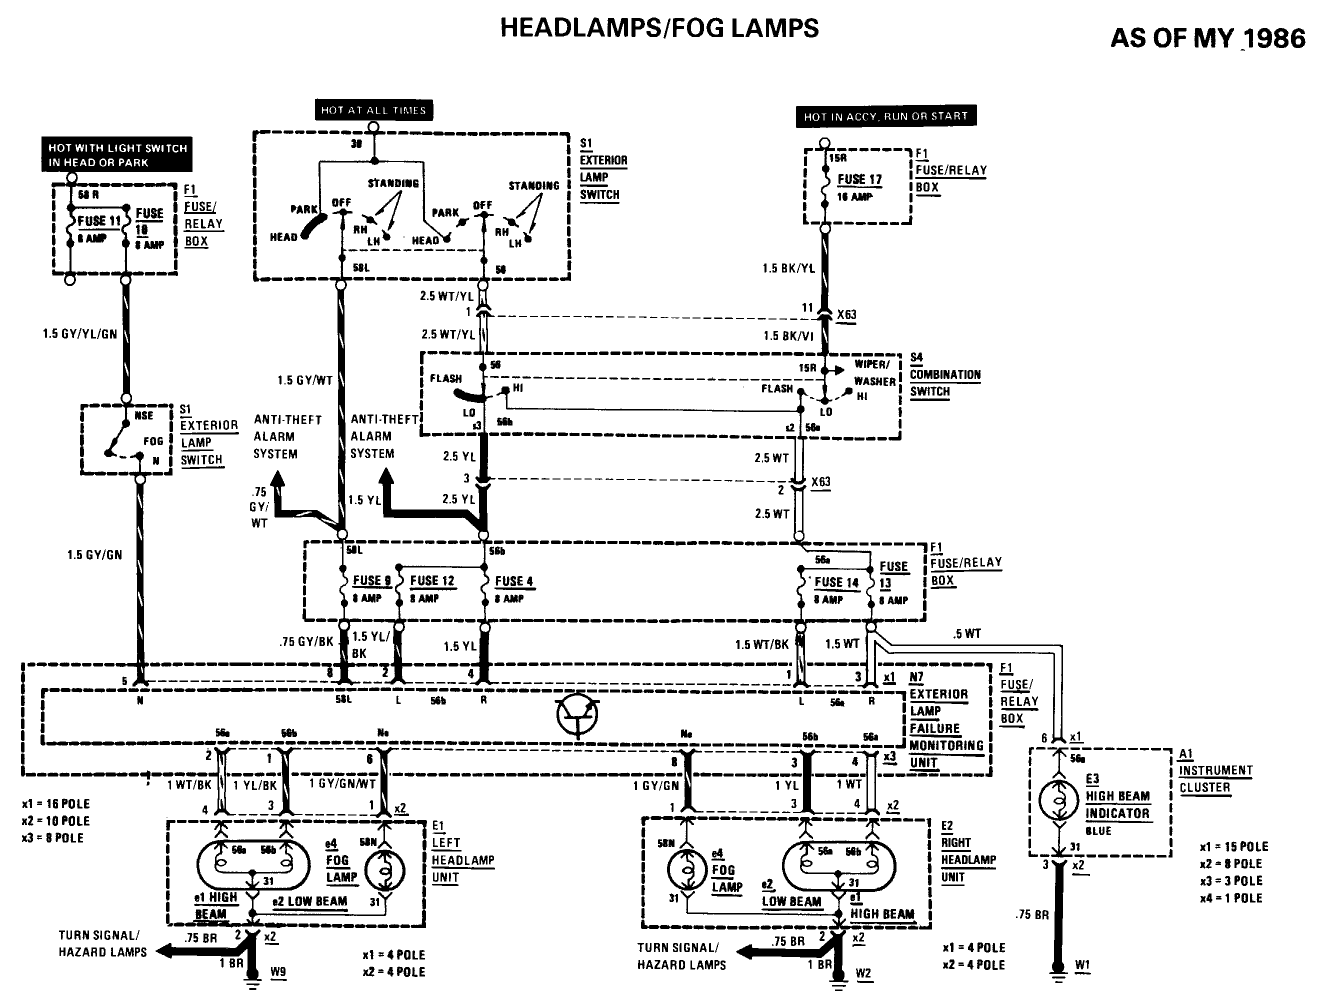 8ec0p Dodge Strautus Rt Need Right Fuse Relay Diagrams together with 5lnco Mercury Grand Marquis Extract Check Engine Codes additionally Mb C300 Wiring Diagram as well 1984 Mercedes Benz 380sl 2 Dr Convertible Roadster Wiring Diagrams in addition 2001 Ford Explorer Tailgate Diagram. on mercedes sl500 fuse box diagram